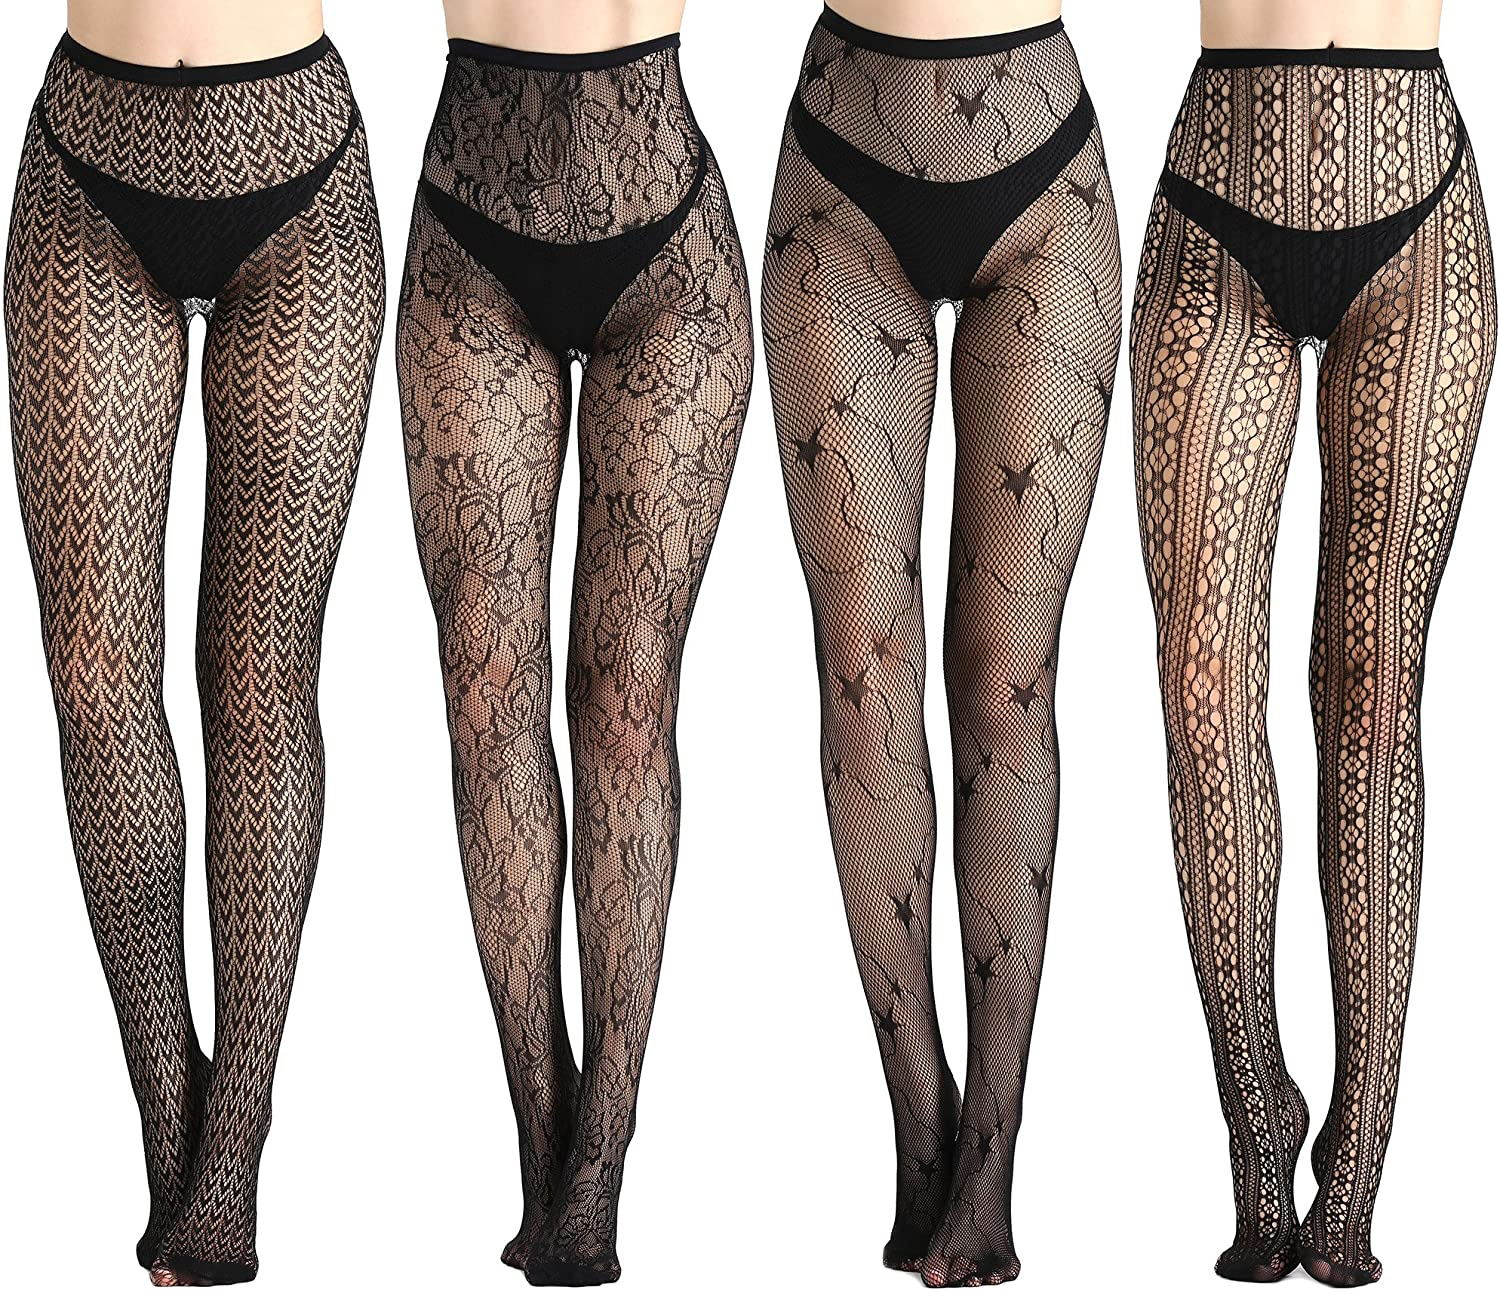 Joyaria Women Sexy Tights Fishnet Thigh-High Garter Stockings Pantyhose Black Pattern 4 Pack